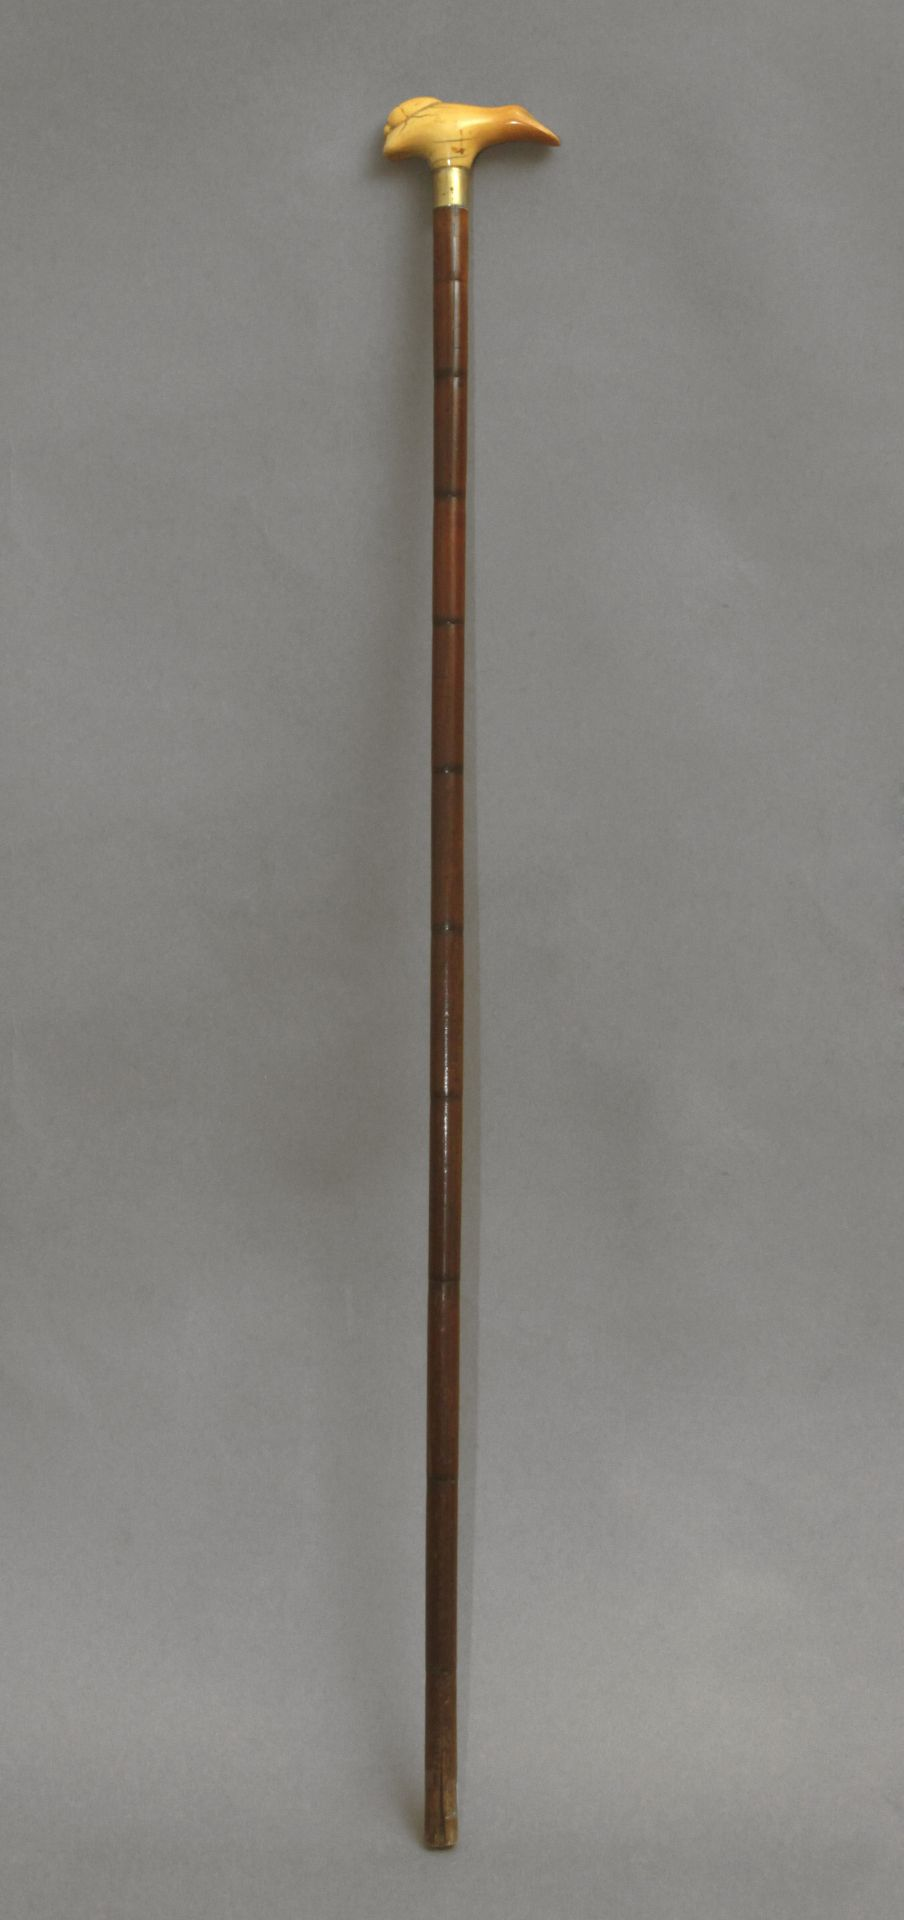 A 19th century probably Japanese walking stick - Bild 4 aus 9